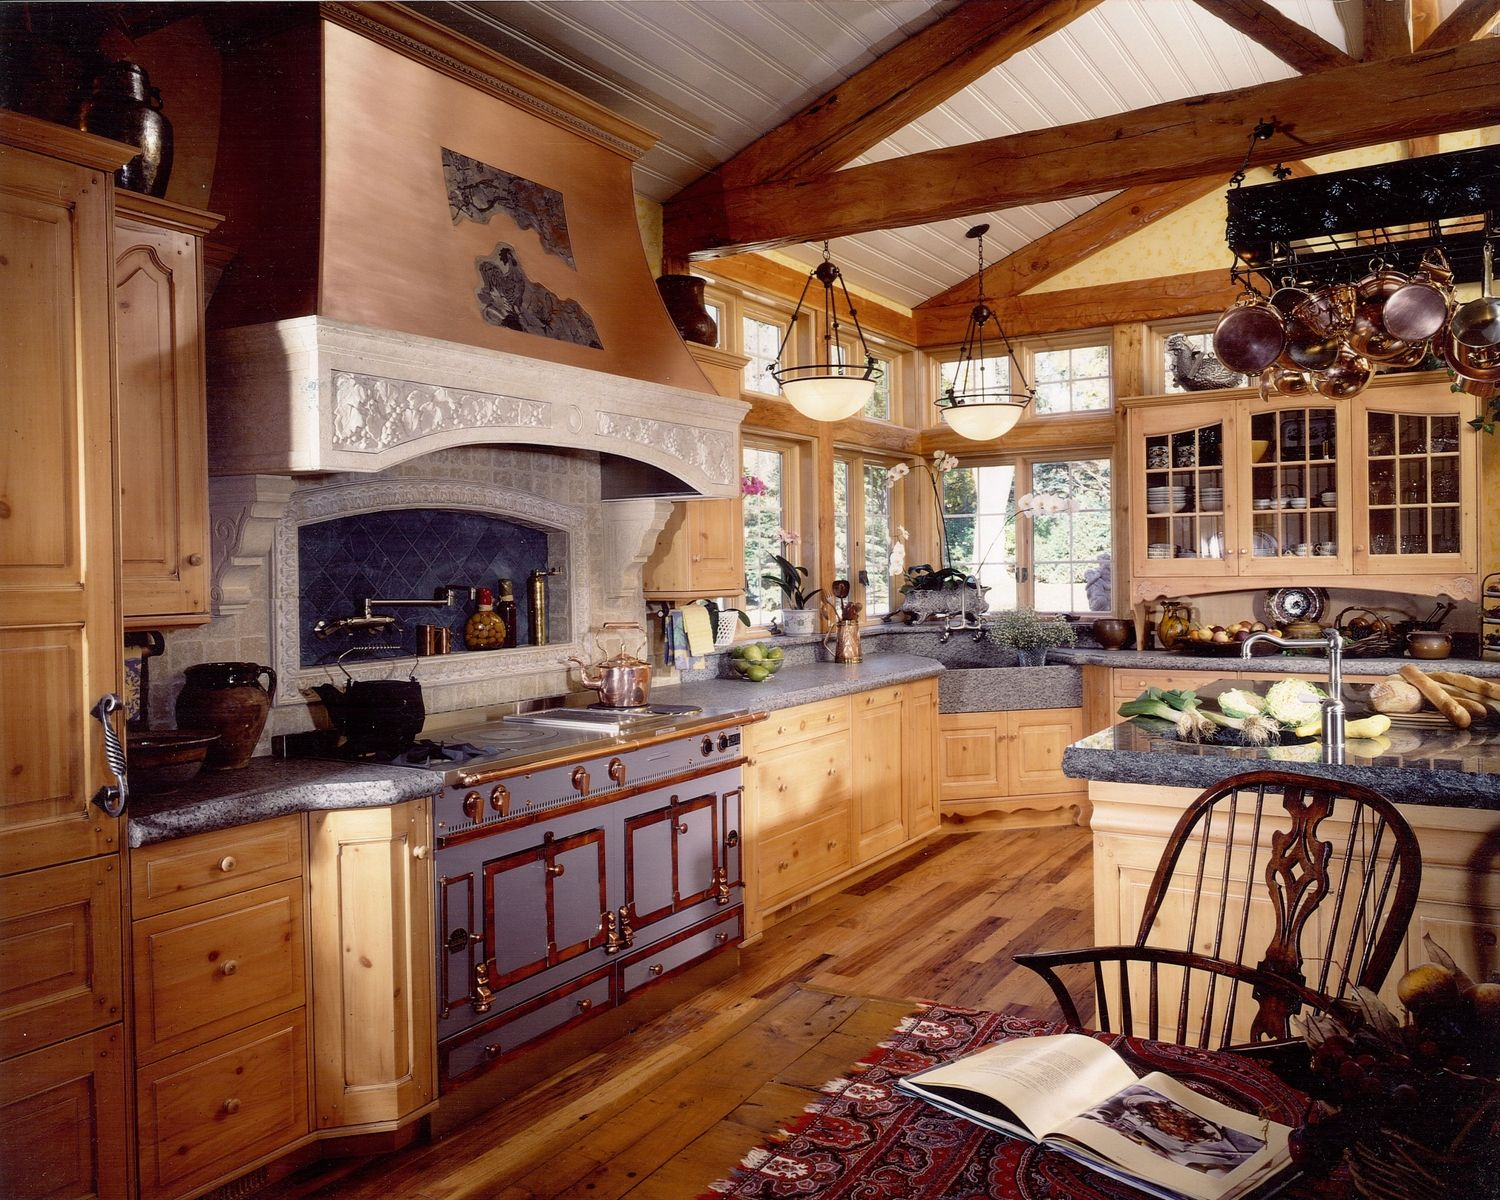 Custom Country Kitchen Custom Made Great American Kitchen Islandscabinets & Design